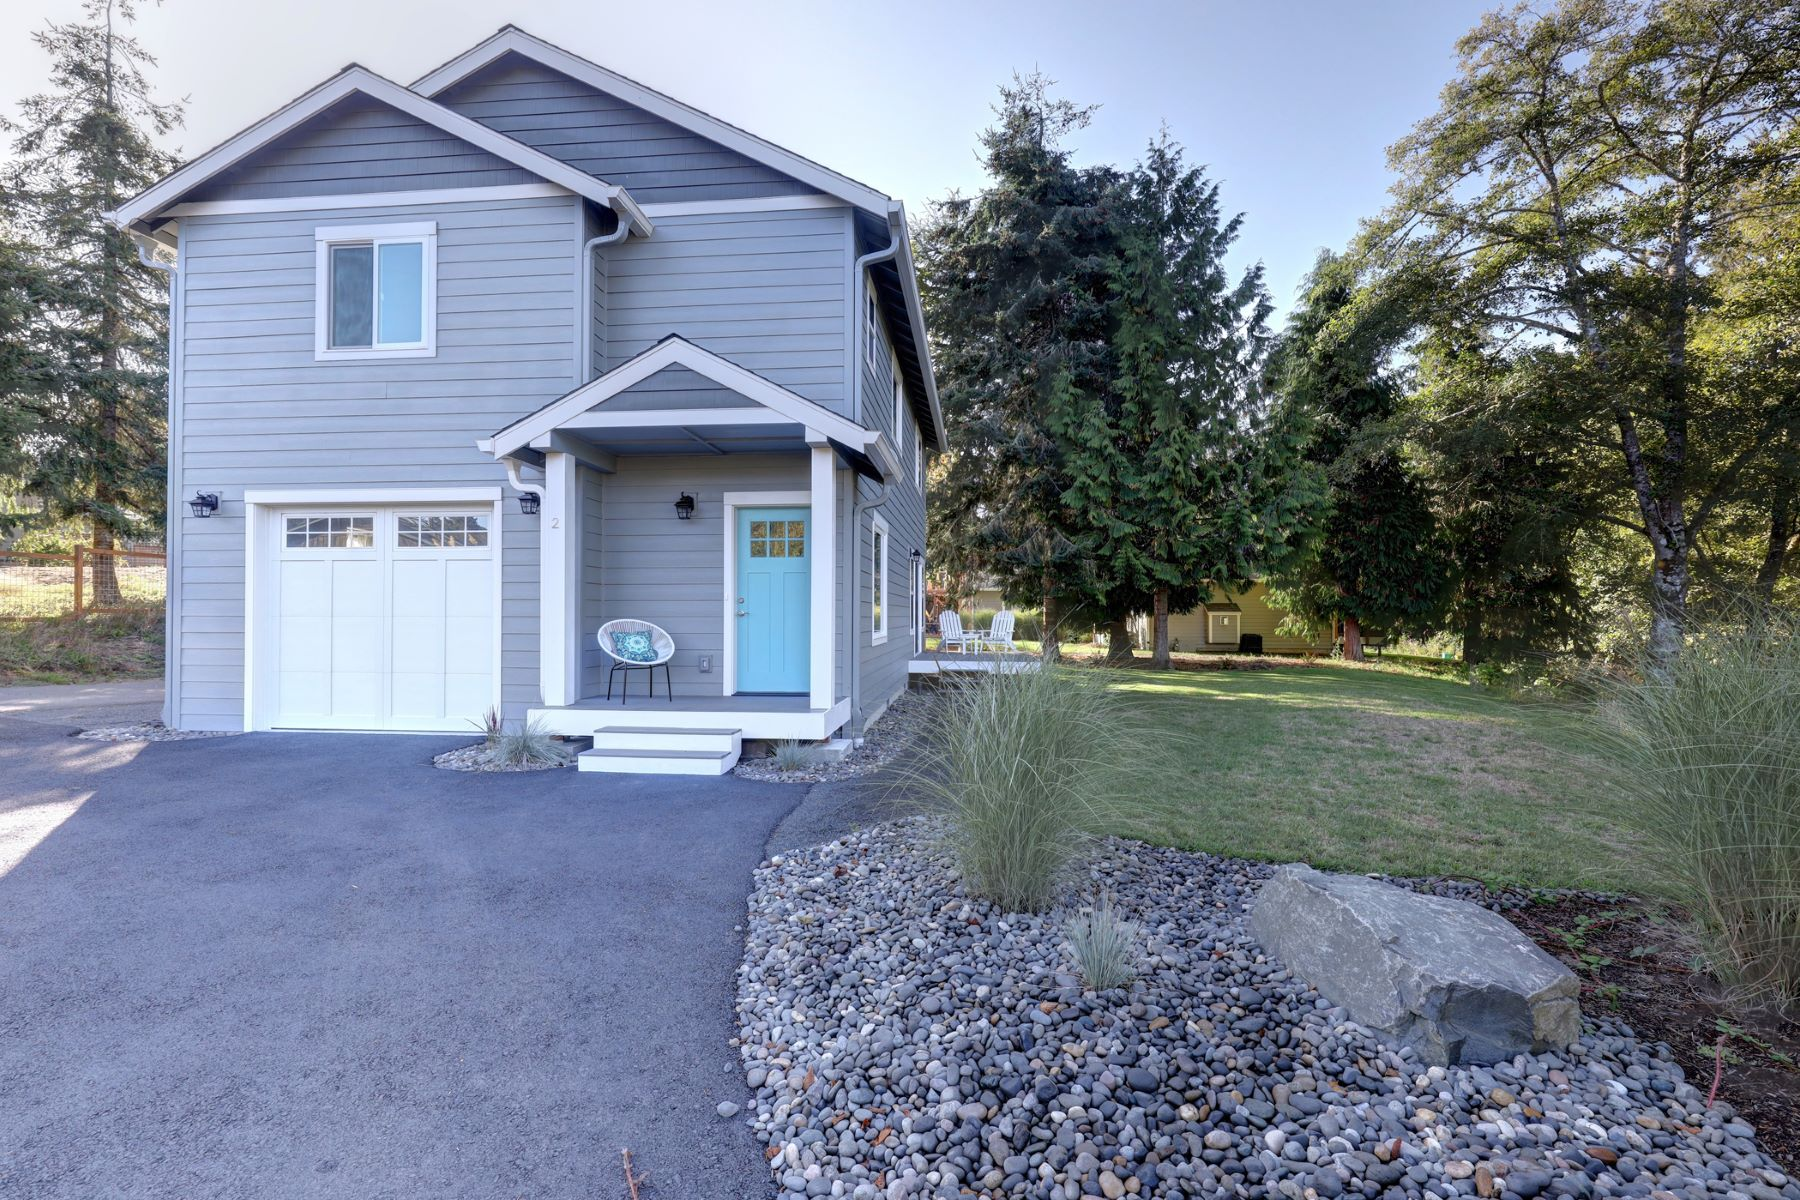 Single Family Homes for Active at Casual Coastal Gearhart Elegance 2 Ashley Lane Gearhart, Oregon 97138 United States